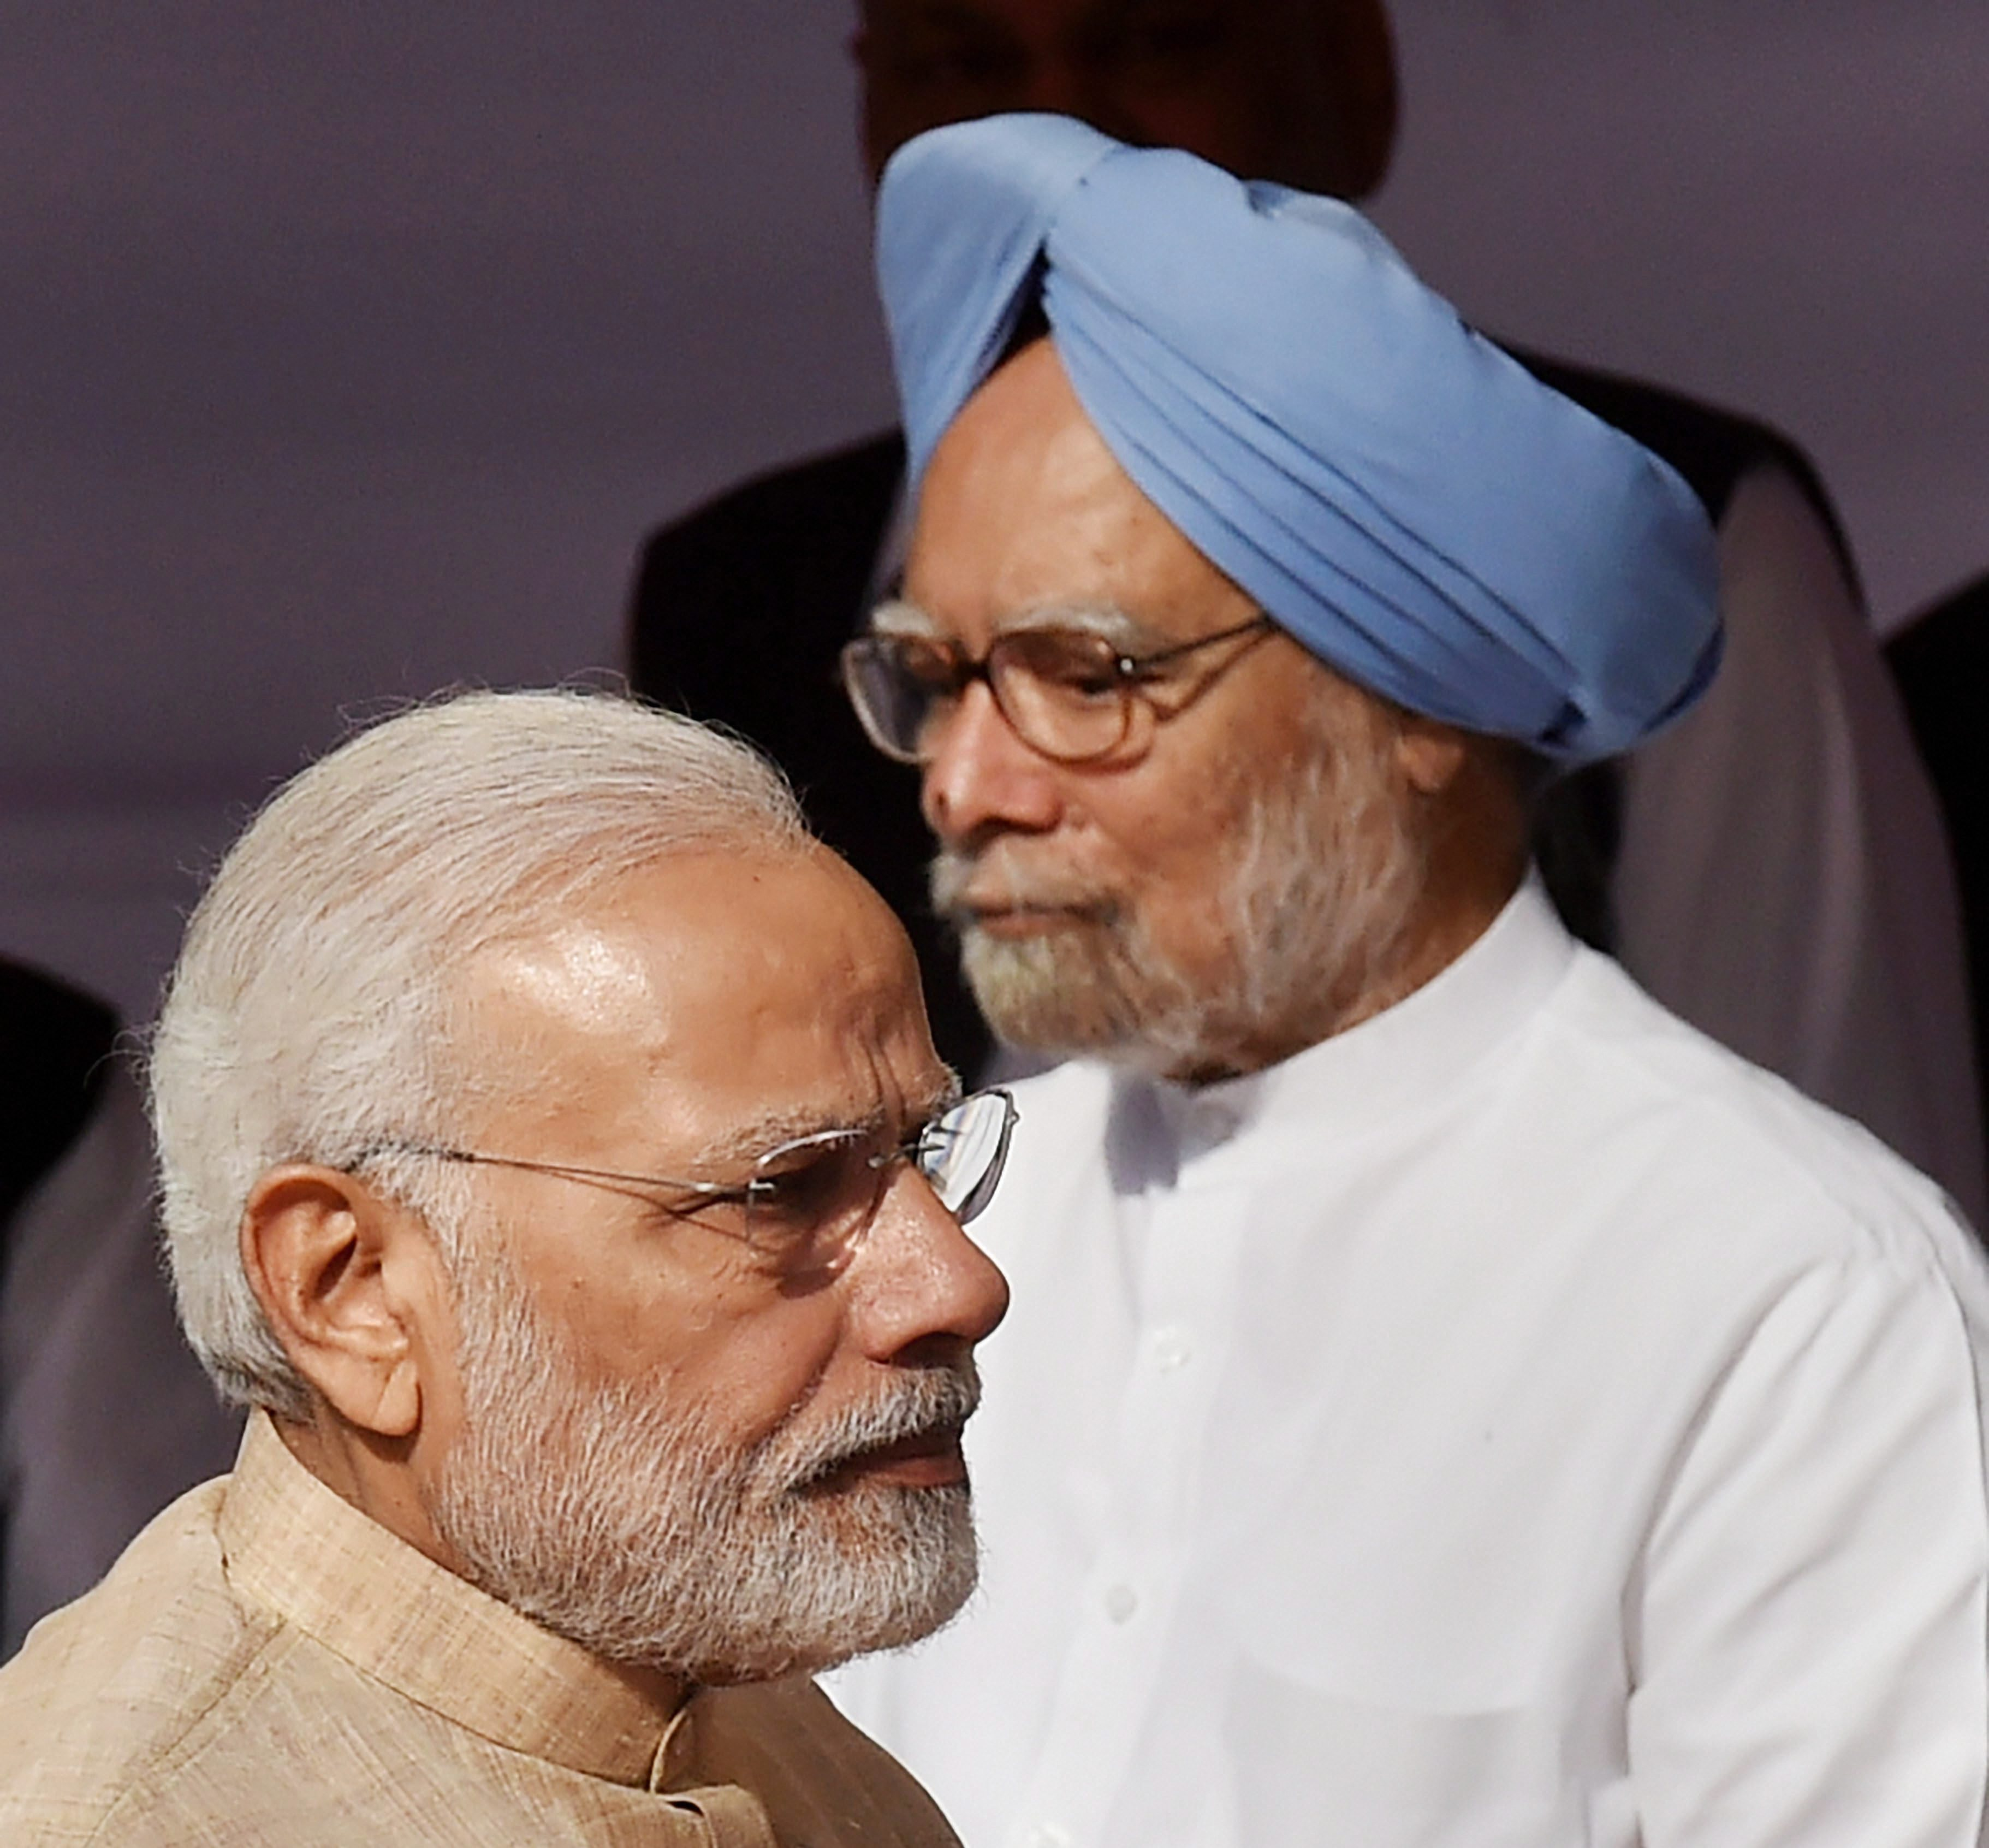 New Delhi: Prime Minister Narendra Modi and former prime minister Manmohan Singh after paying tributes to Babasaheb B R Ambedkar on the occasion of his 127th birth anniversary, at Parliament House in New Delhi on Saturday. PTI Photo by Atul Yadav (PTI4_14_2018_000022B)